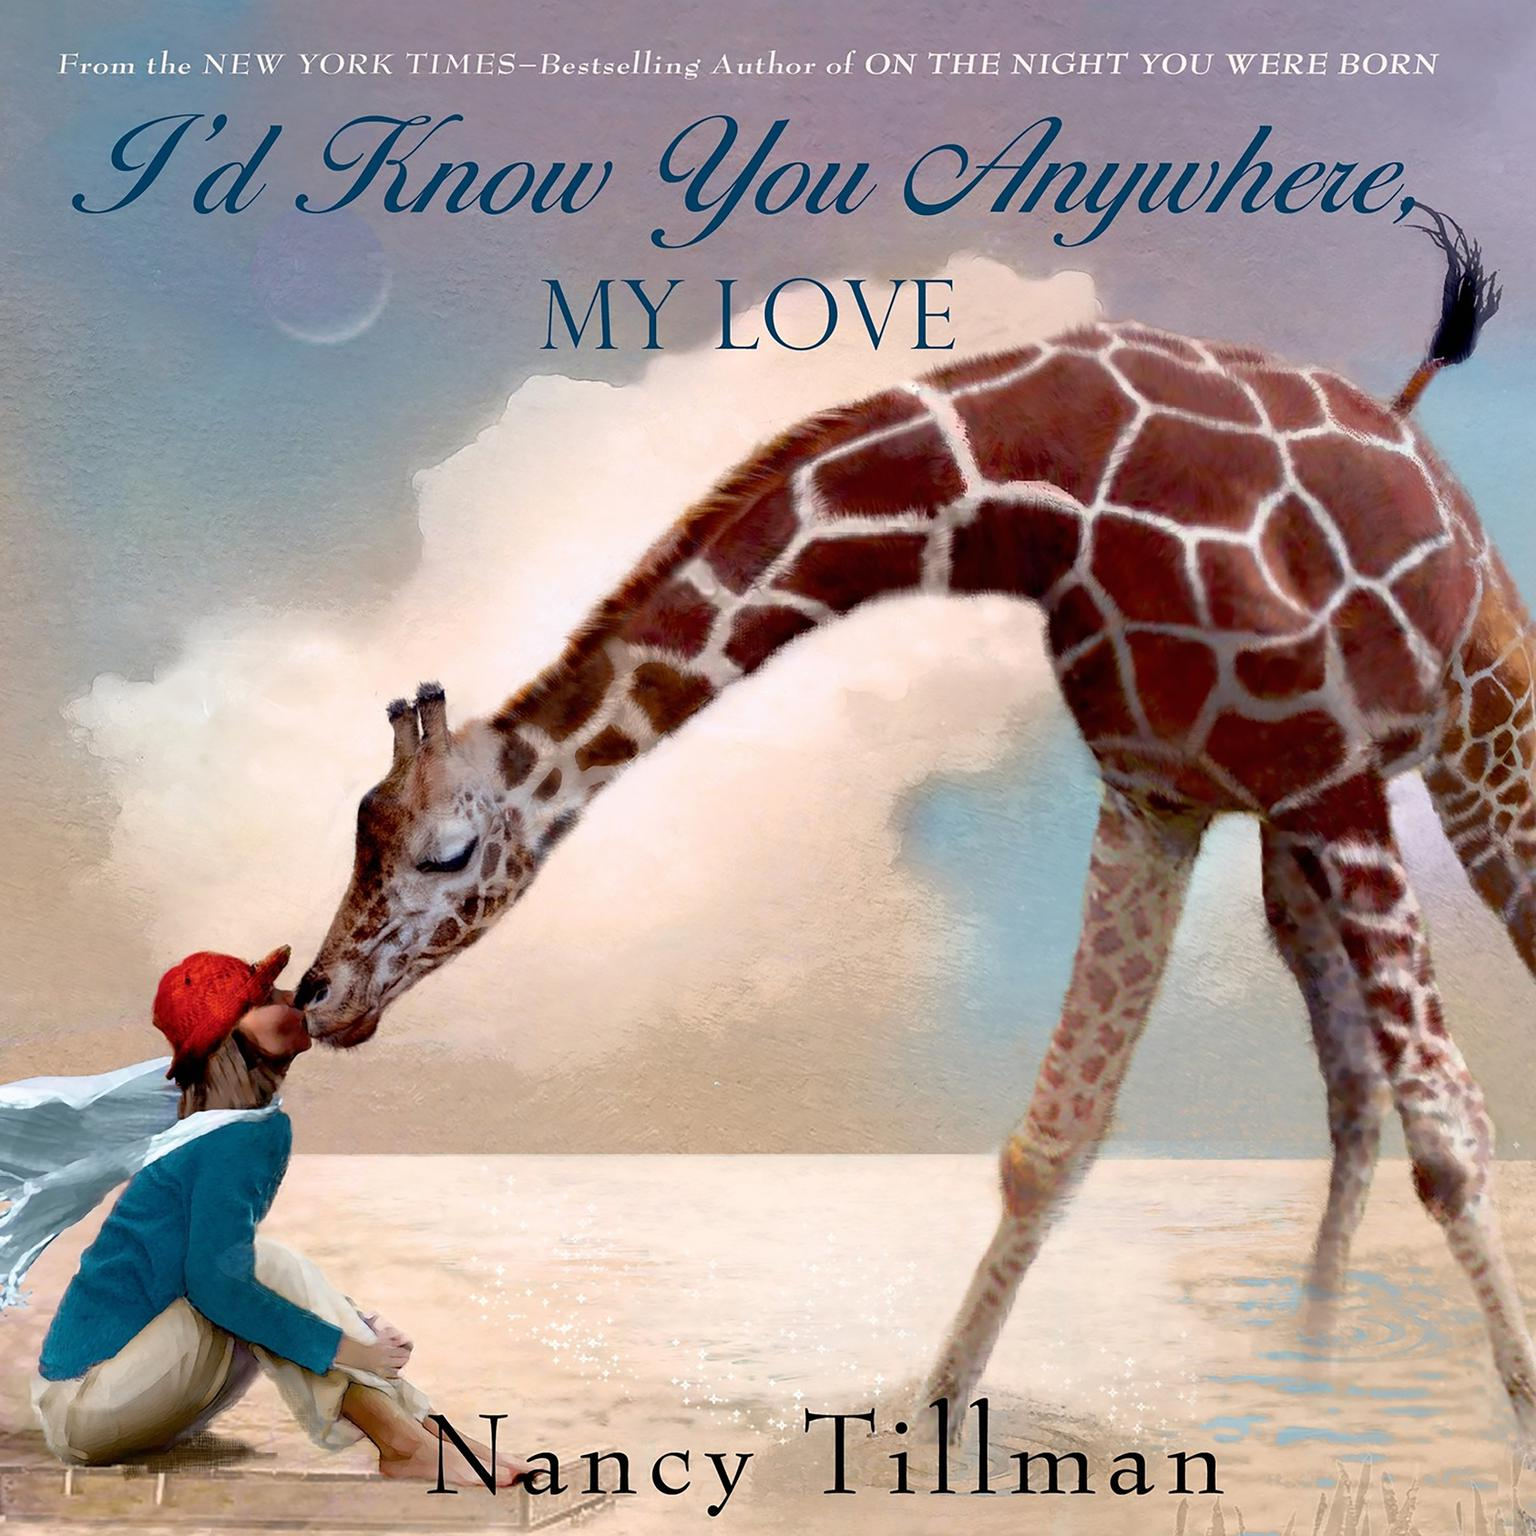 Printable I'd Know You Anywhere, My Love Audiobook Cover Art